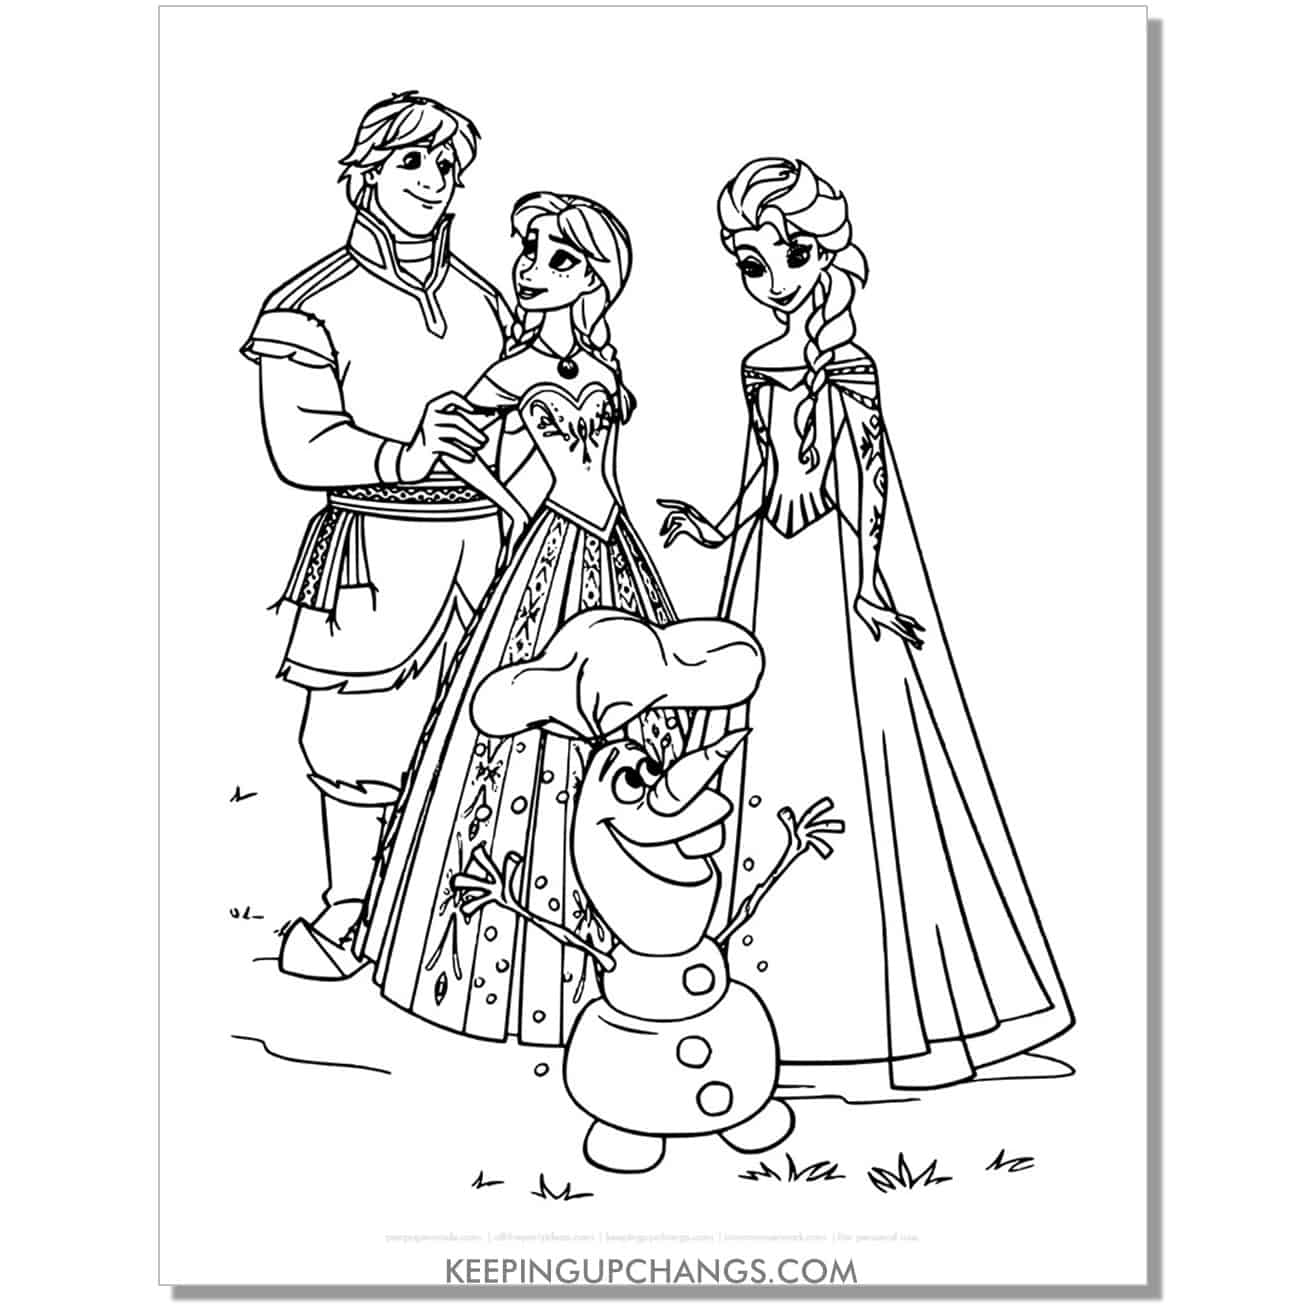 free frozen elsa, anna, kristoff, olaf coloring page.